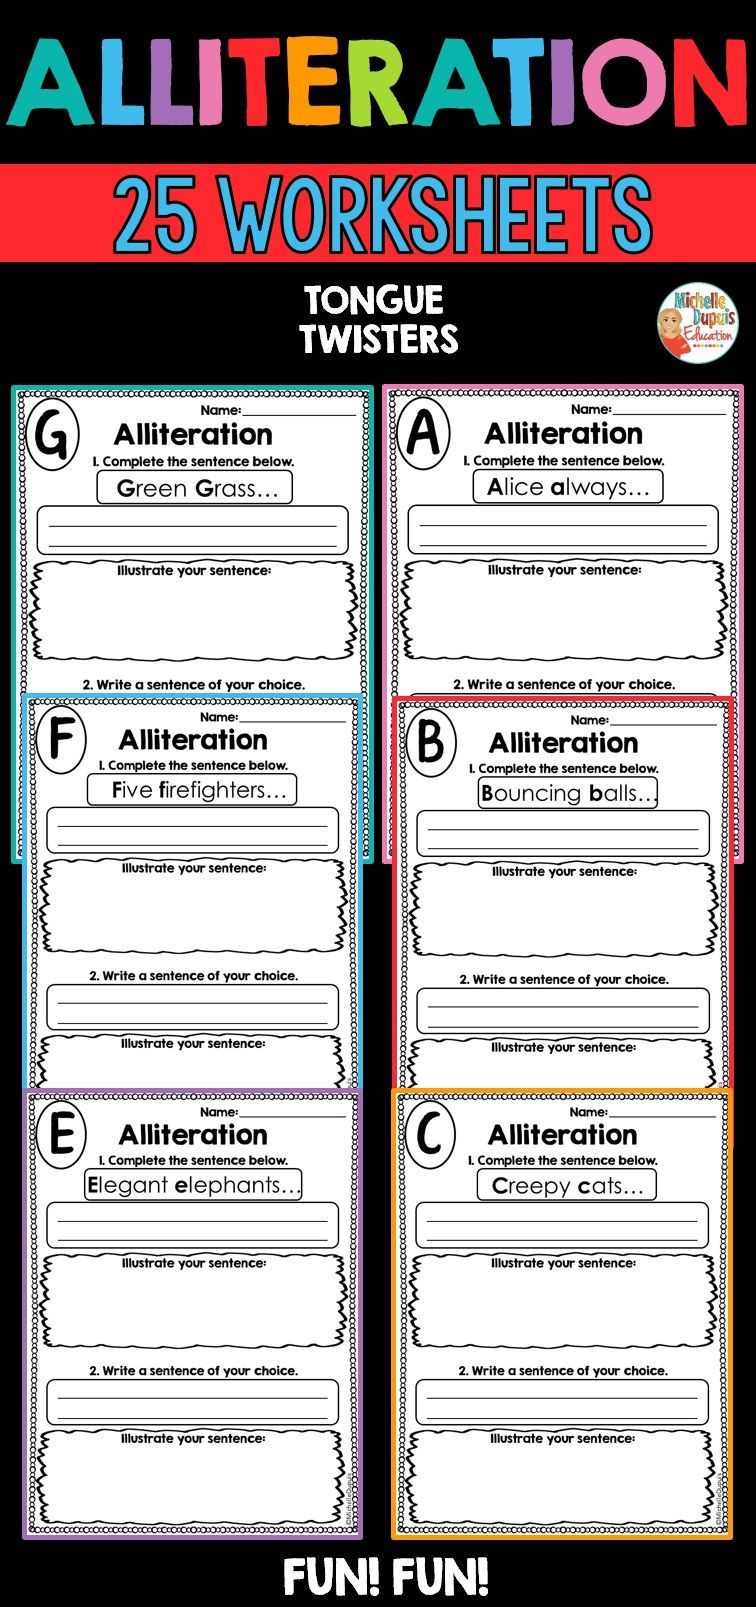 Alliteration Worksheets Middle School Alliteration Worksheets In 2020 with Images